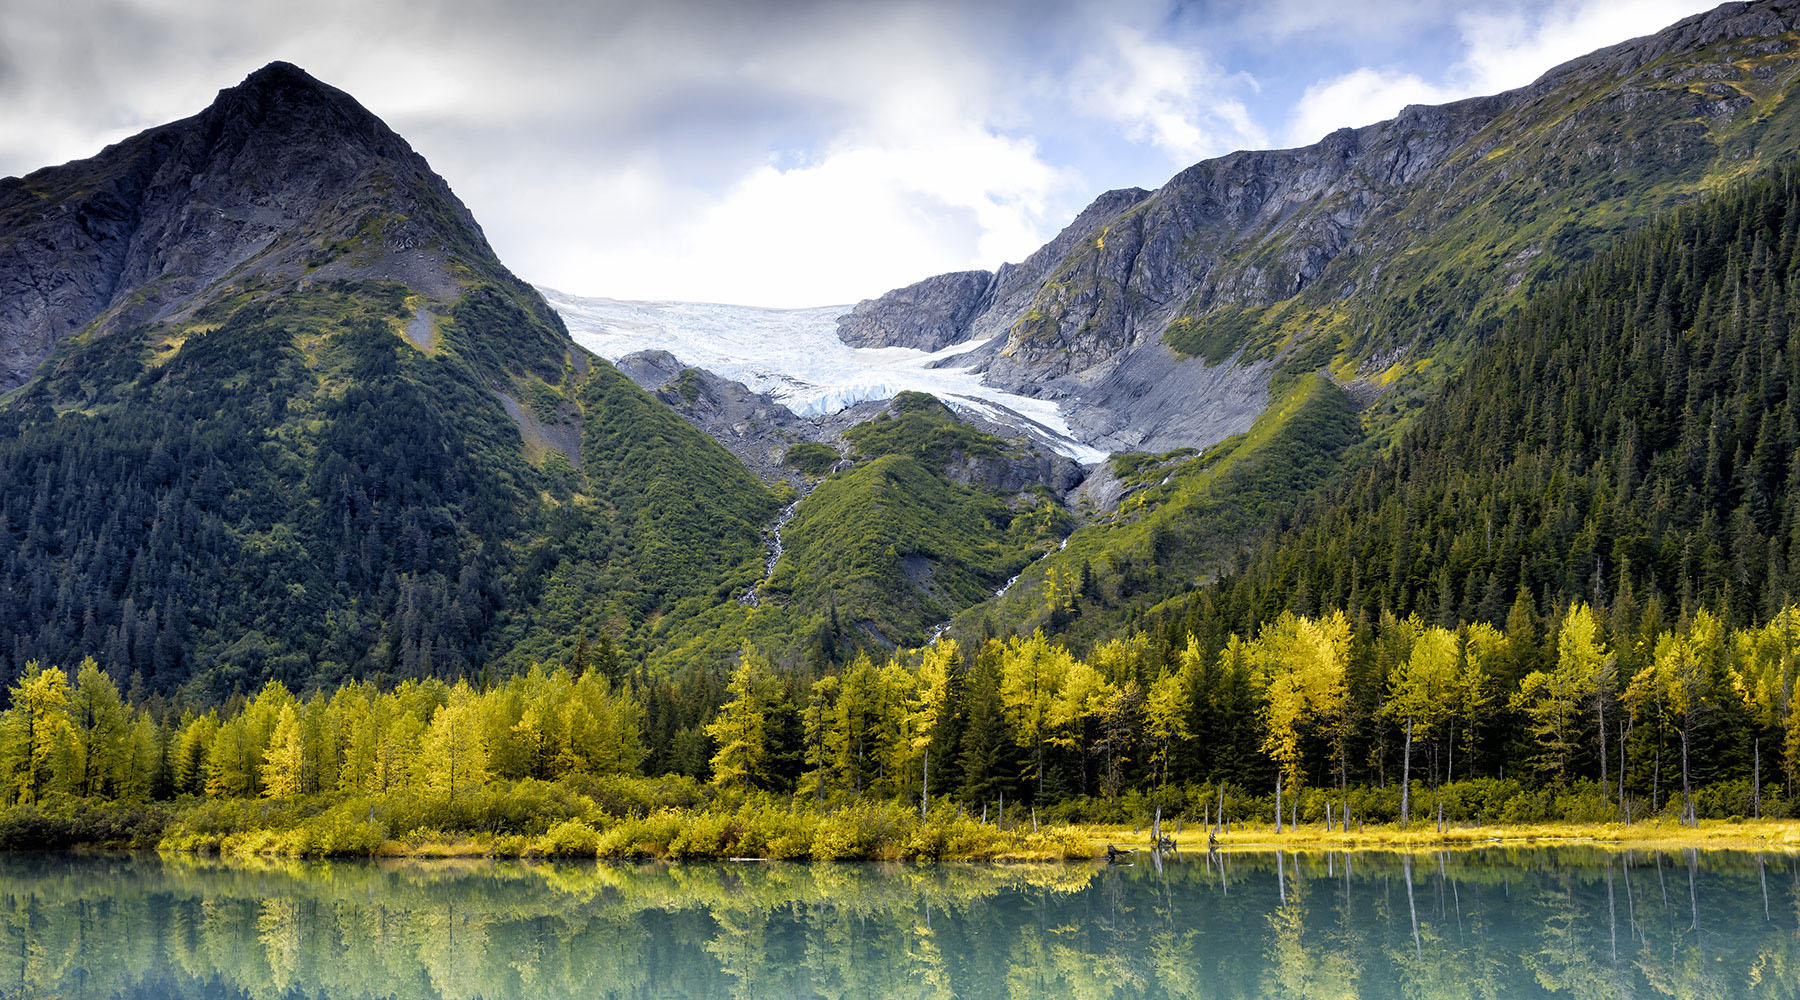 8-NIGHT ALASKA VOYAGE & 6-NIGHT POST ALASKA PKG 4A